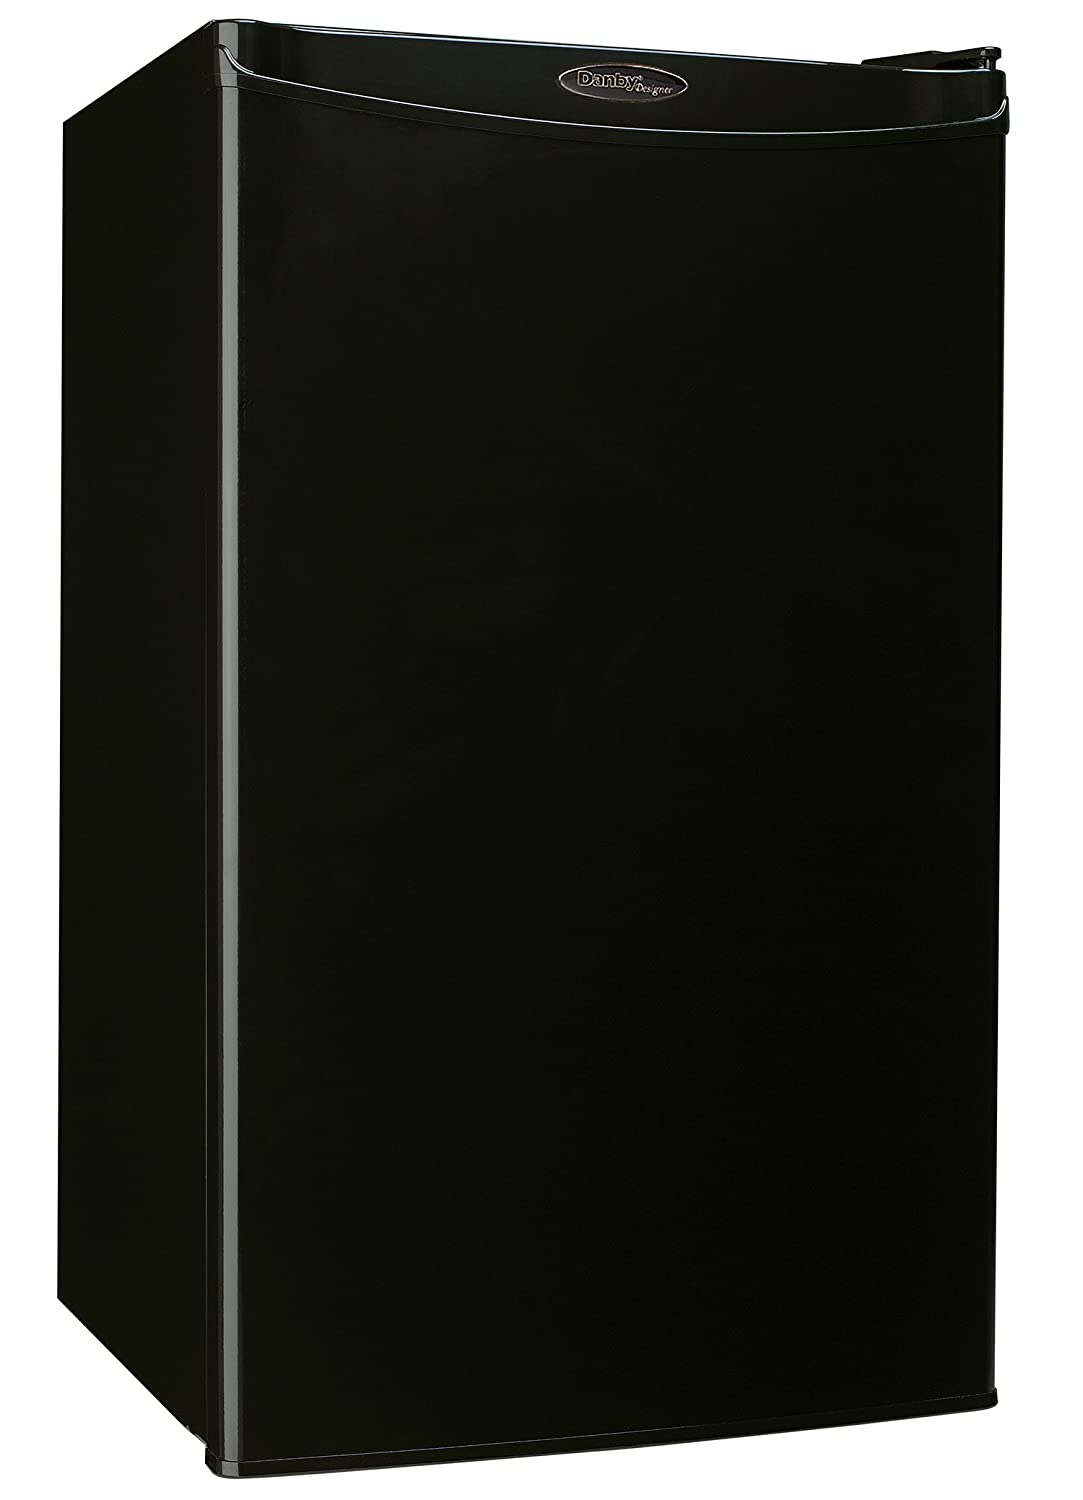 Danby Compact Mini Bar Dorm Home Beverage Cooler Fridge Refrigerator, Black